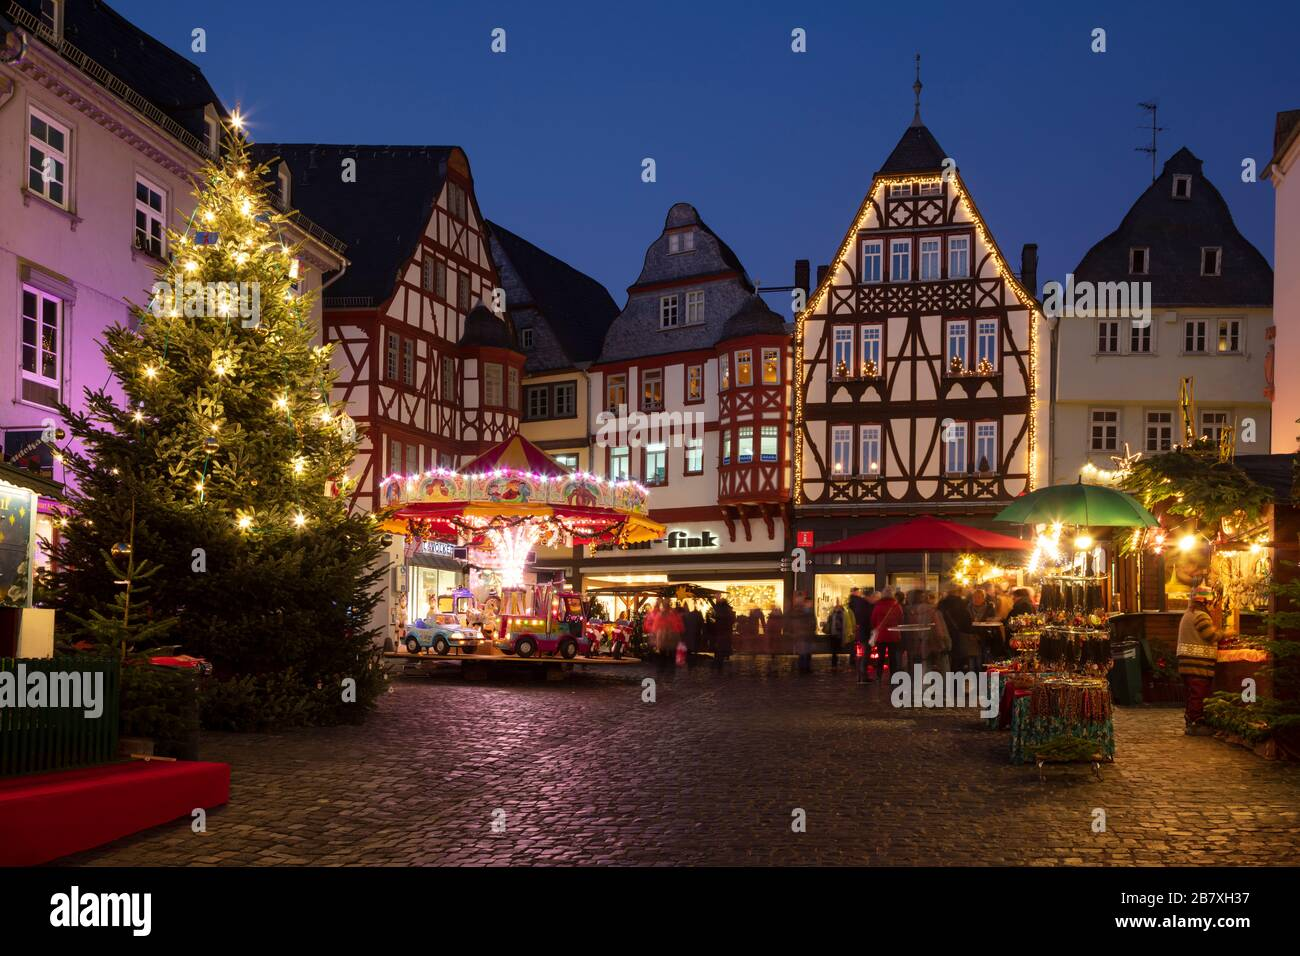 Limburg An Der Lahn Christmas Market 2020 Christmas market at the old town, Limburg an der Lahn, Hesse